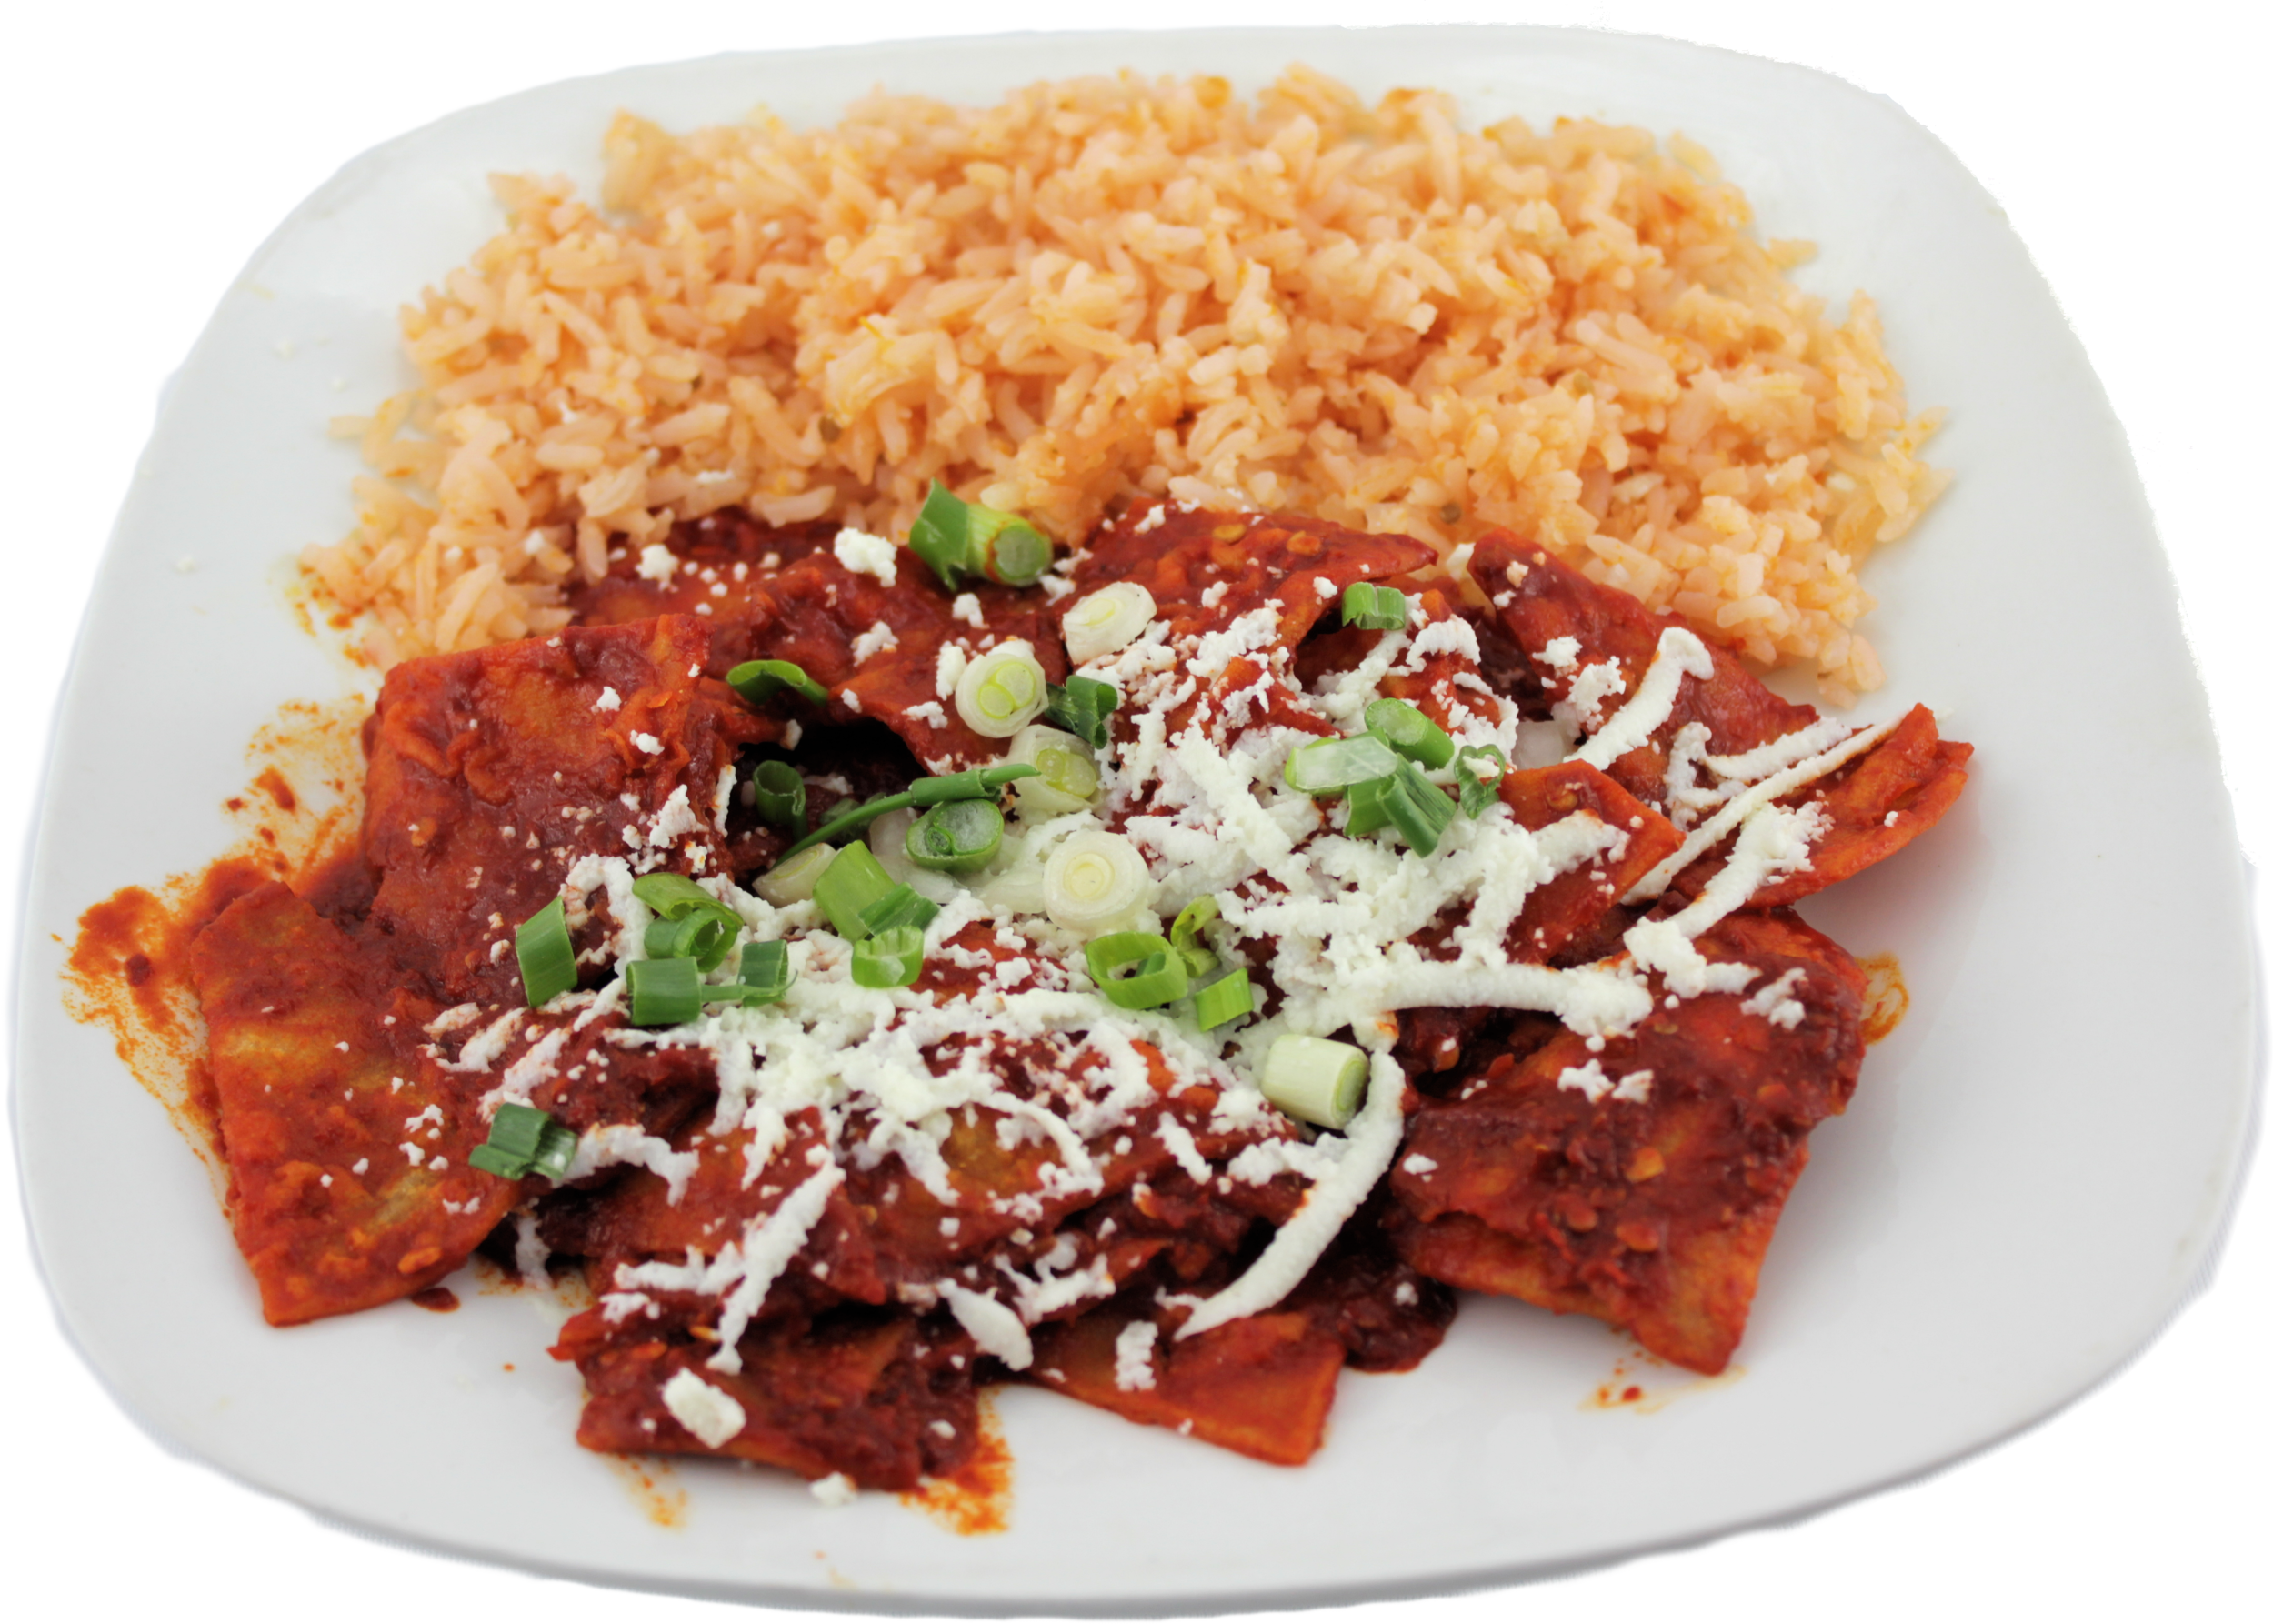 Chilaquiles  Red sauce or green sauce $5.99